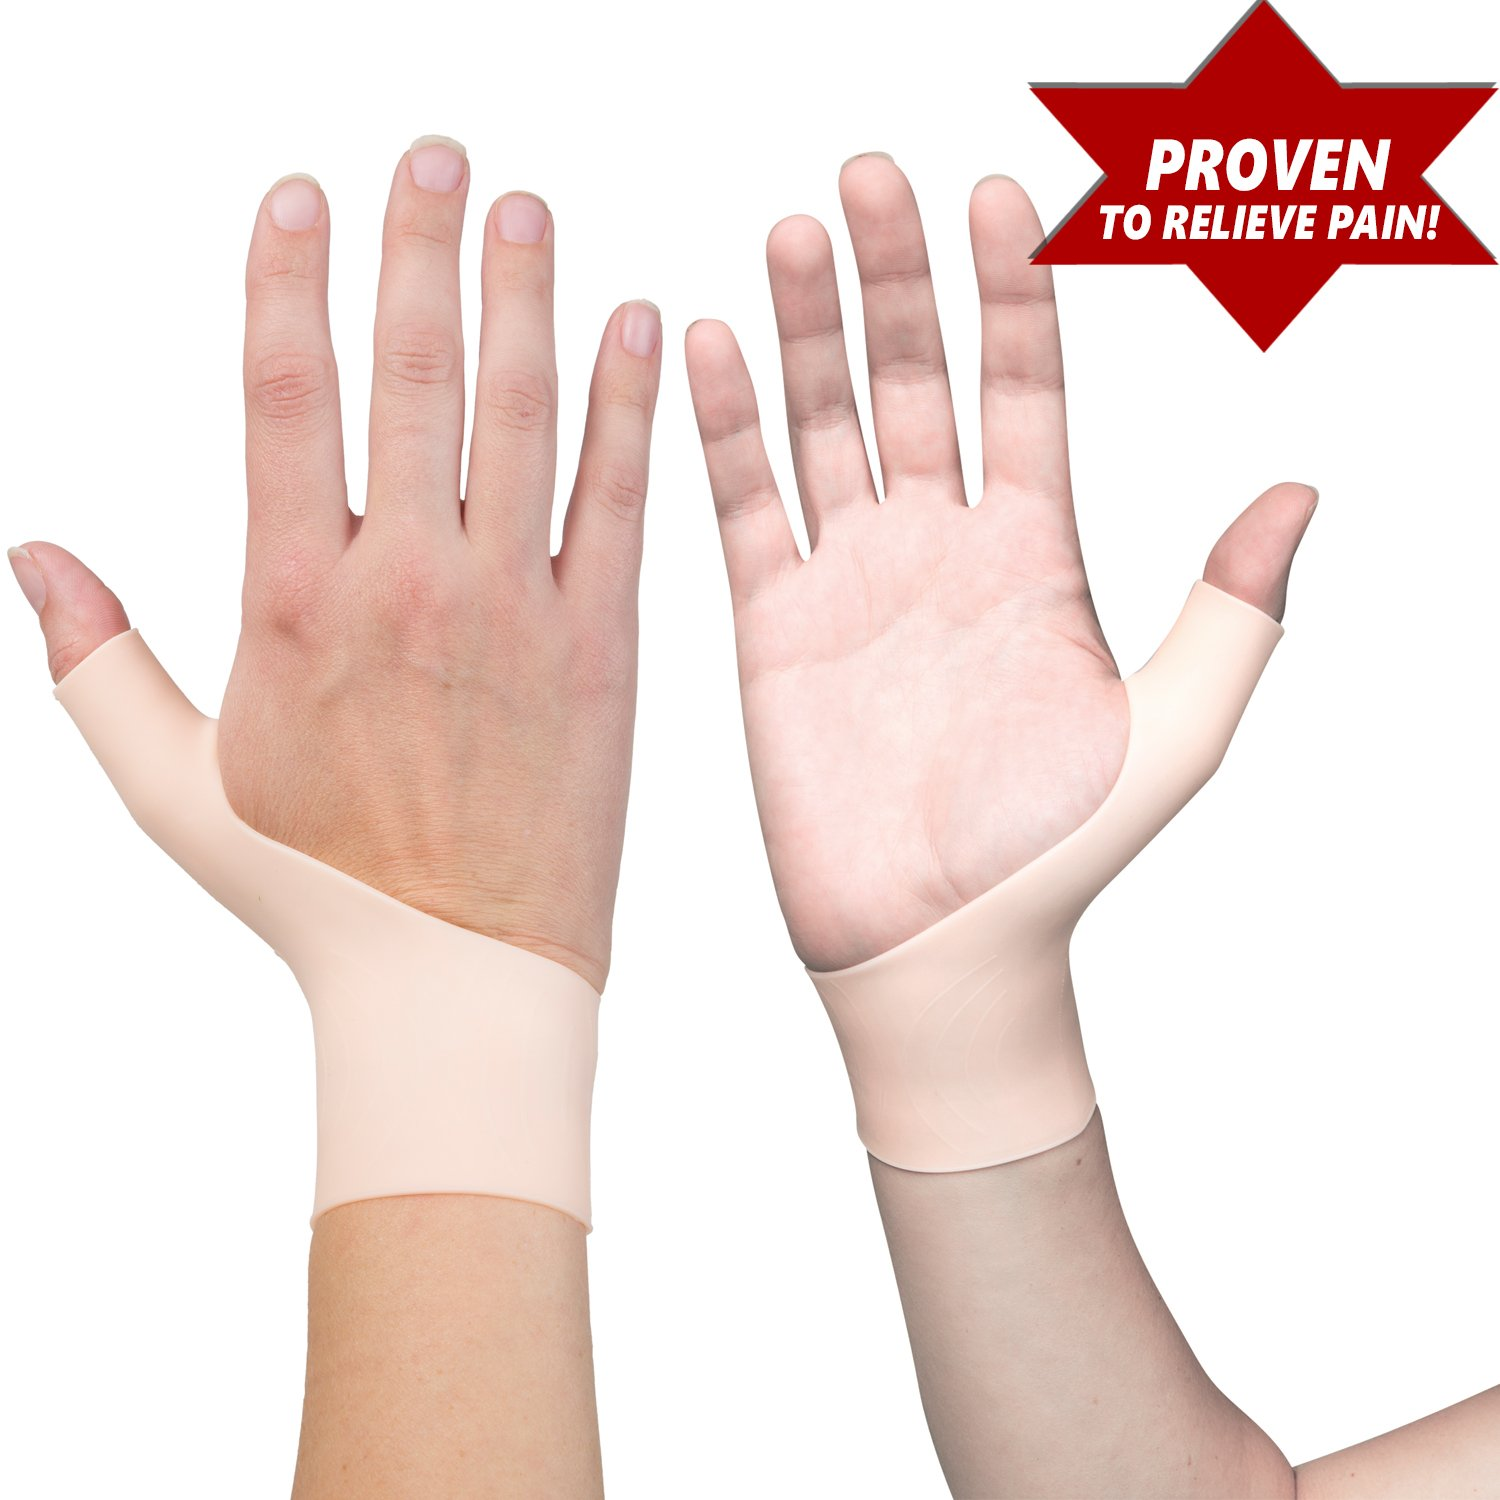 2 Premium Gel Wrist Support Braces for Right & Left Hand | Proven to Relieve Wrist & Thumb Pain Including Arthritis, Rheumatism, Carpal Tunnel, Tenosynovitis | Soft, Comfortable & Light Weight by Excelyfe (Image #1)